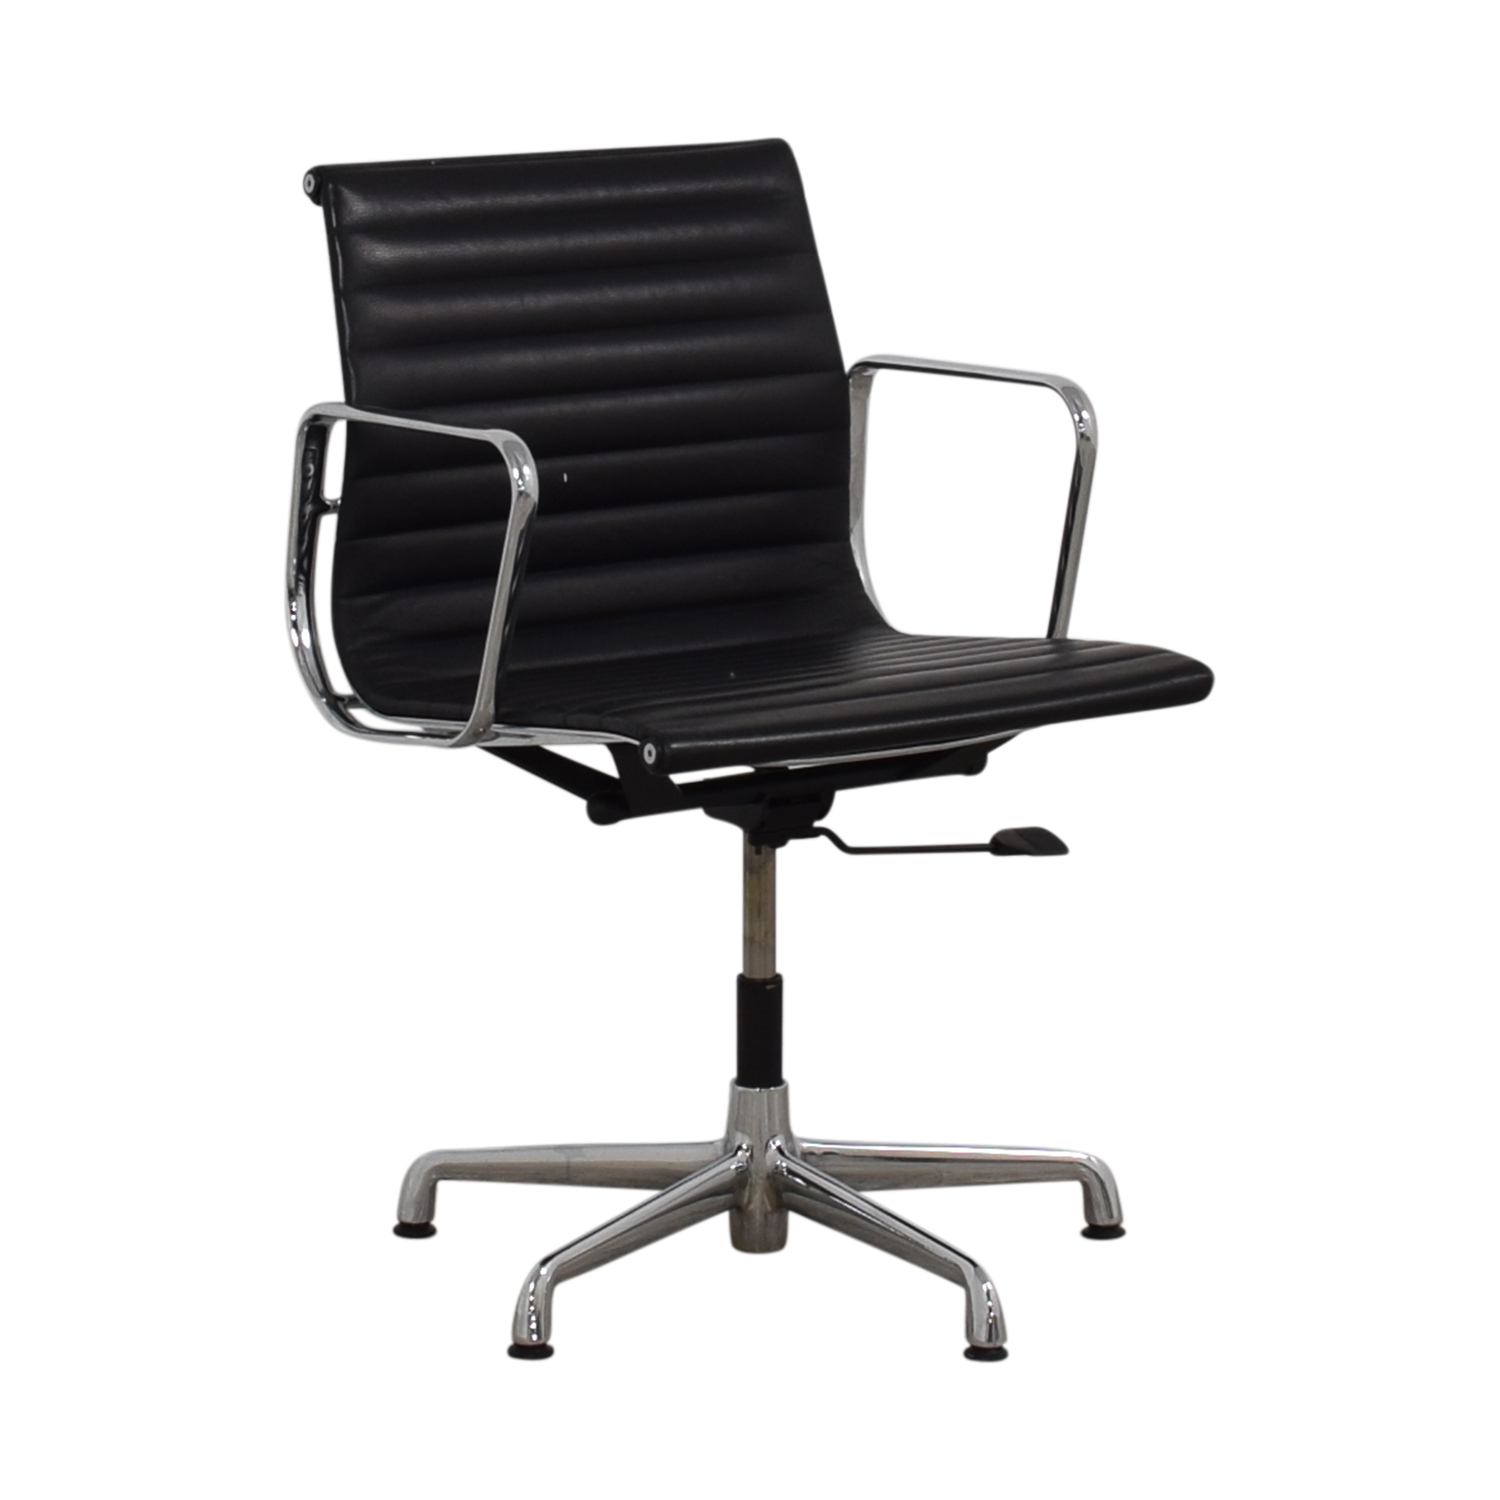 buy Herman Miller Eames Aluminum Black Leather Office Chair Herman Miller Home Office Chairs